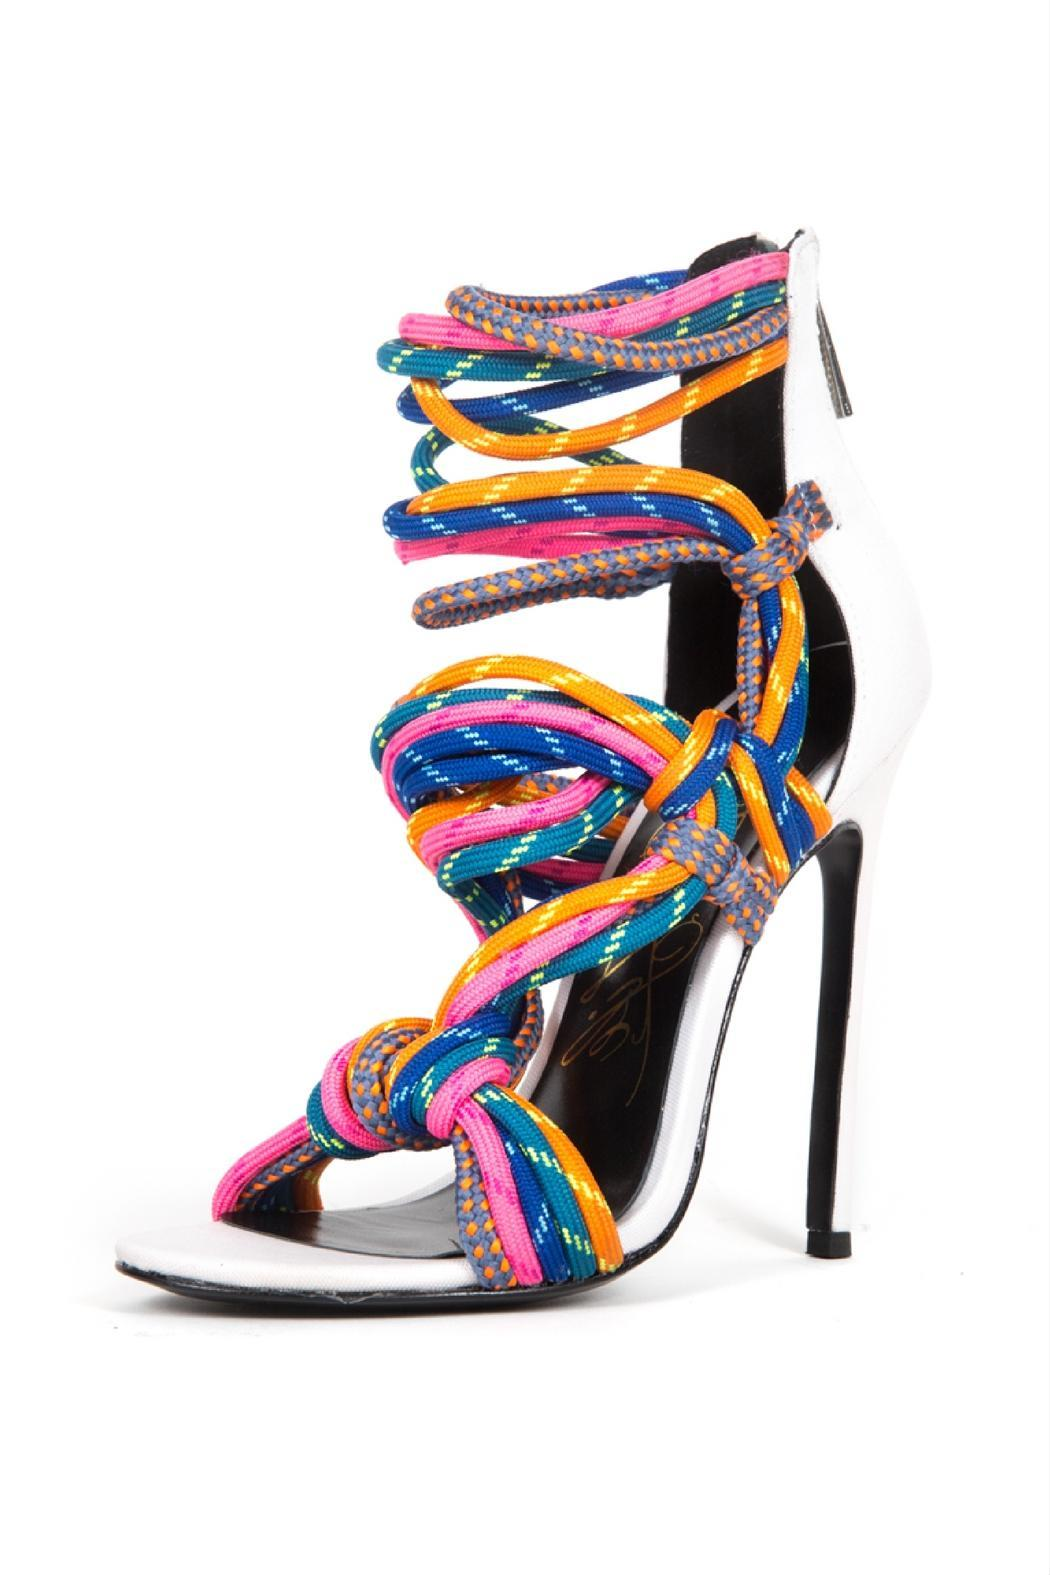 Lust For Life Usa Multi Colored Rope Heels From Alabama By